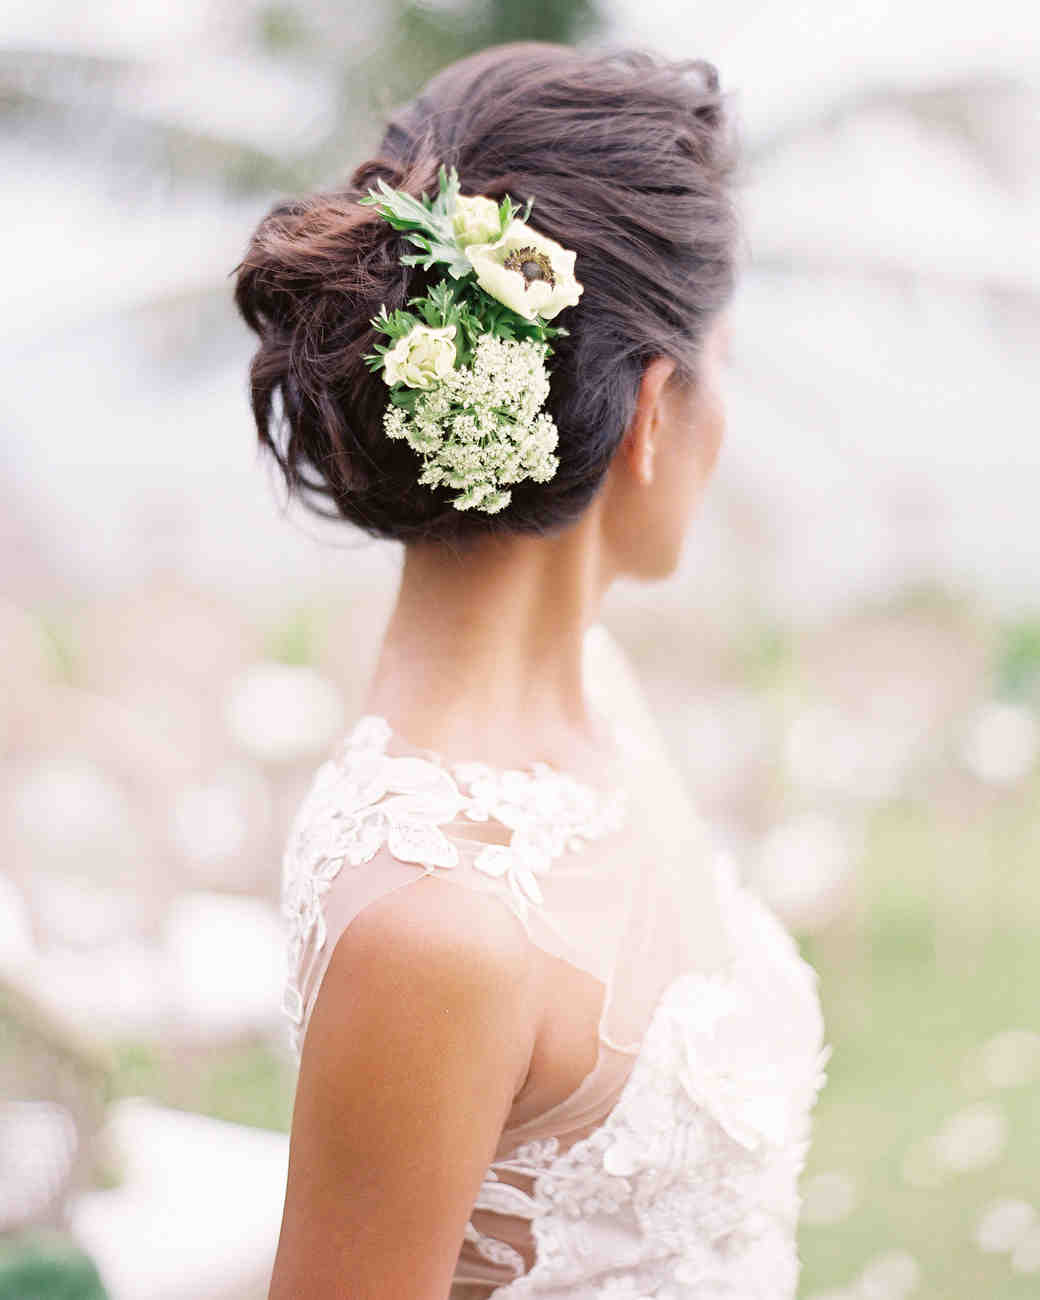 Wedding New Hair Style: 20 Wedding Hairstyles With Flowers